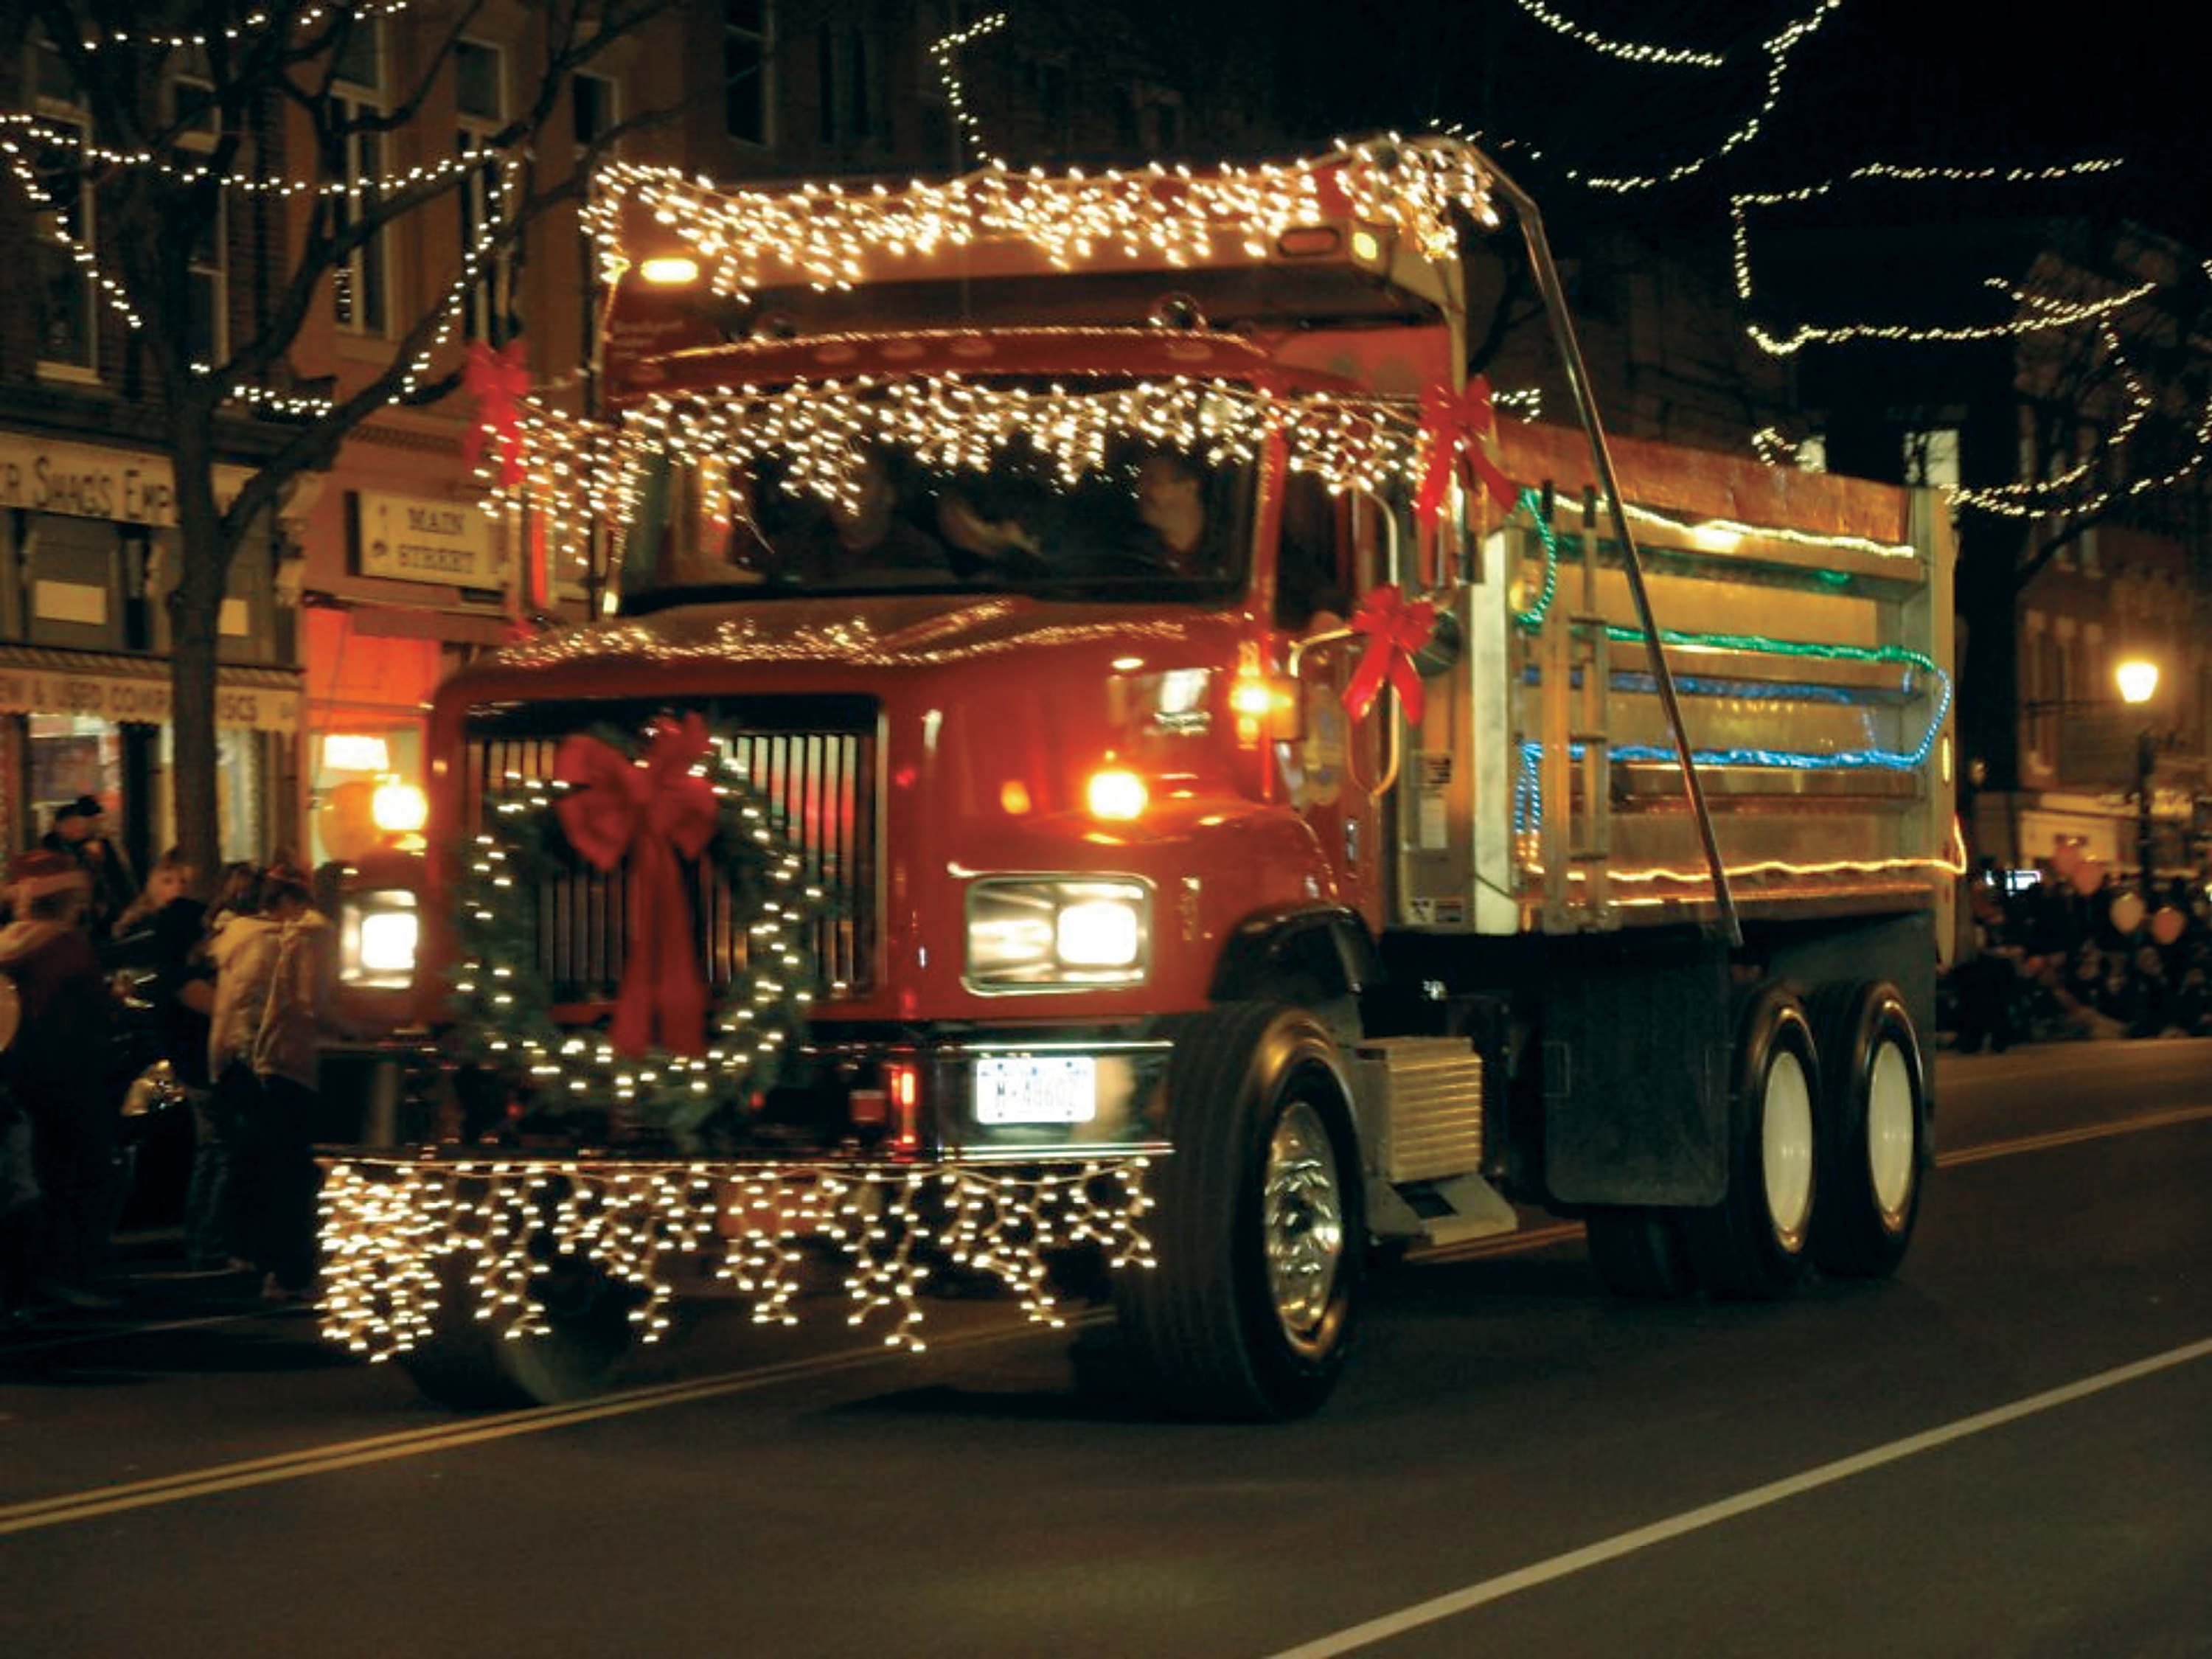 The Holiday Lights Spectacular Community Parade in Brockport will feature sparkling lighted floats, cars and trucks to line up Main Street. File photo